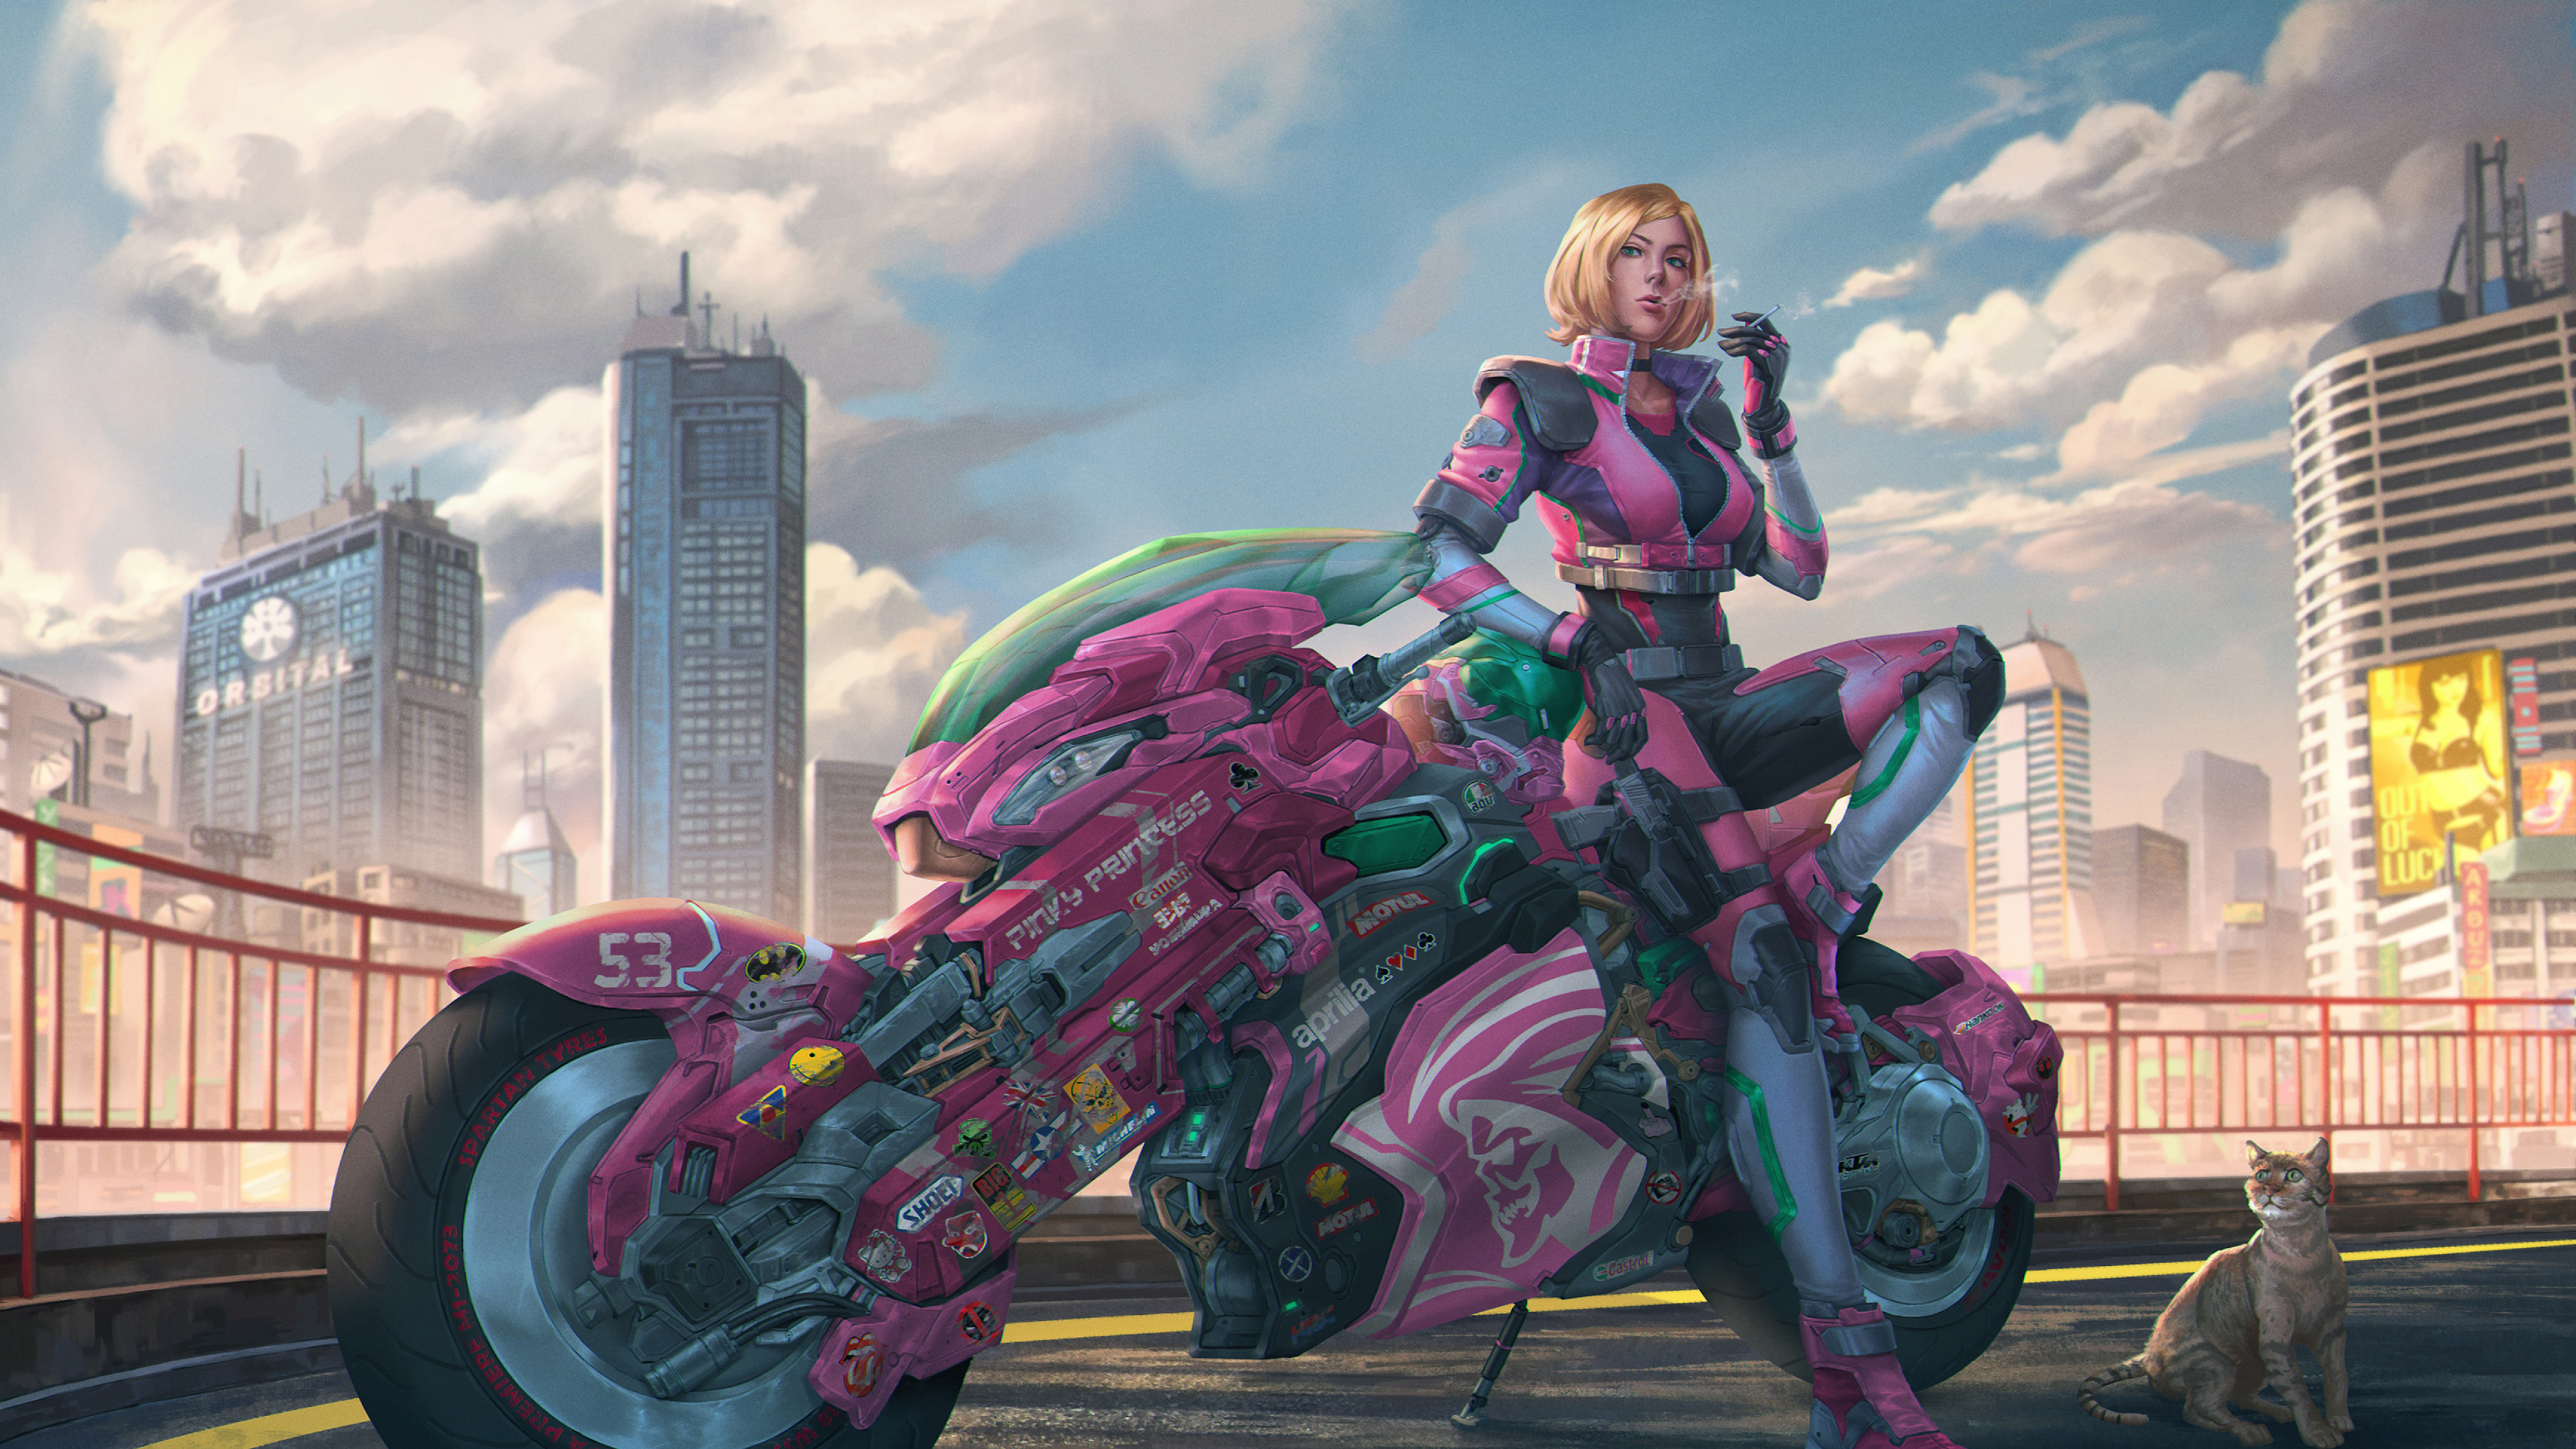 3840x2160 Motorcycle Cyberpunk Girl 4k Wallpaper Hd Artist 4k Wallpapers Images Photos And Background